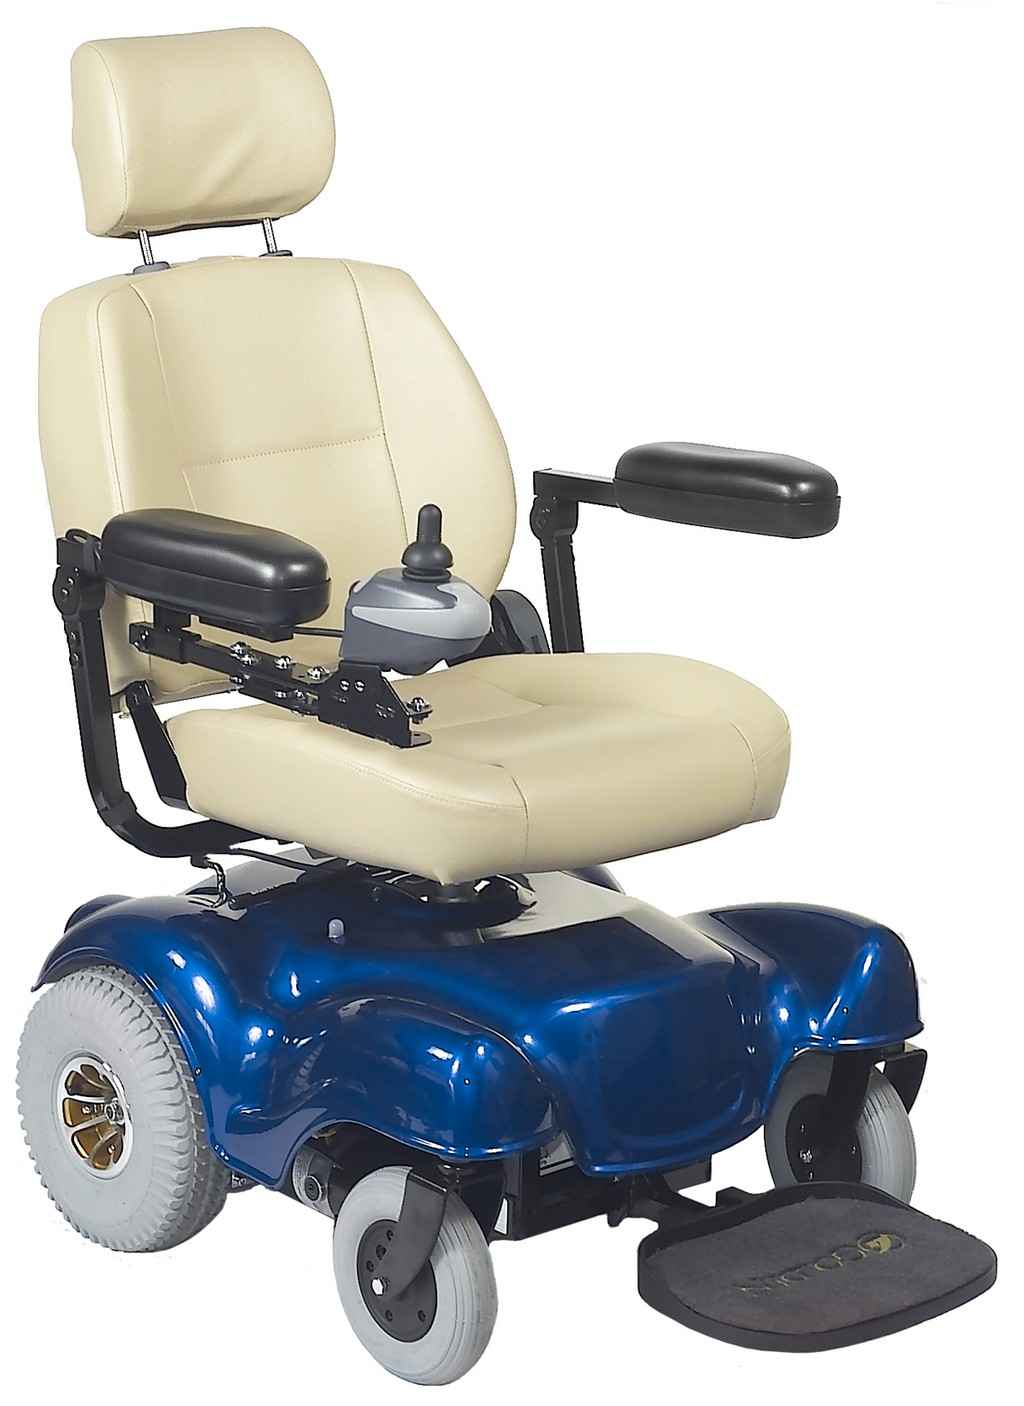 electric wheelchair parts wheels, electric wheelchair battery specs, electric wheelchairs invacare r32, electric wheel chairs